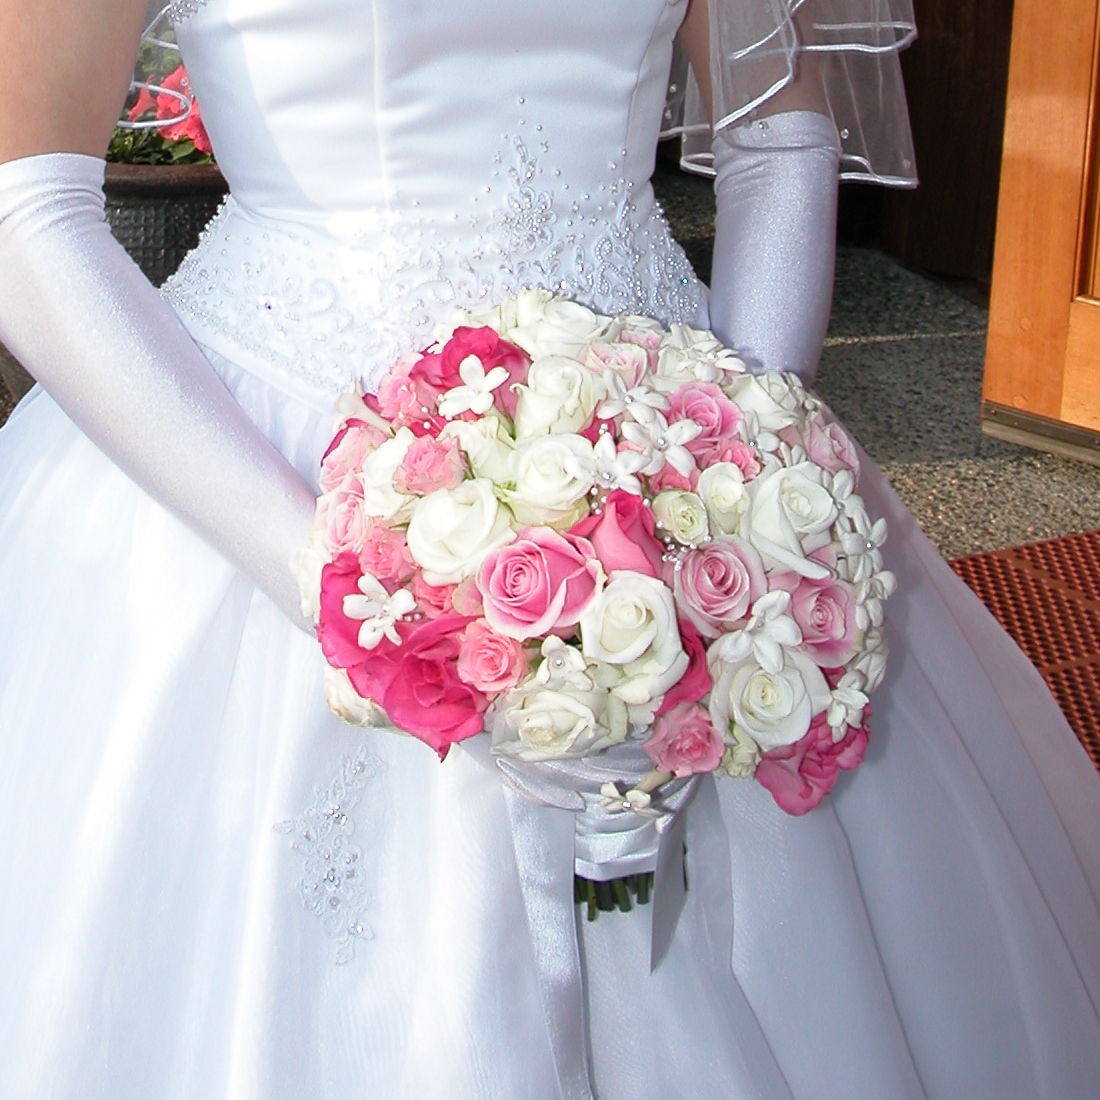 File:Bridal bouquet white pink rose stephanotis.jpg - Wikimedia Commons